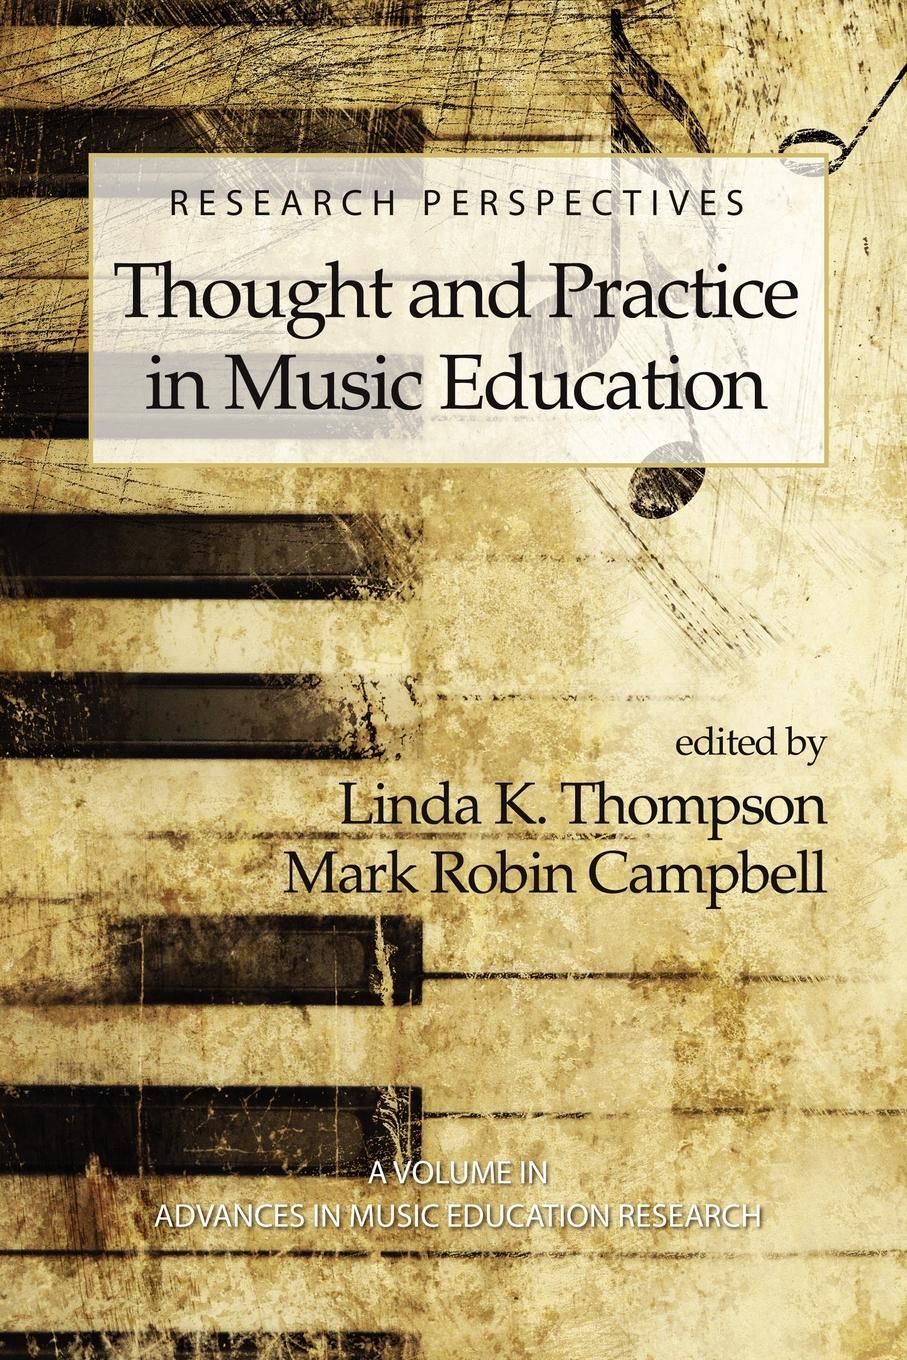 Research Perspectives. Thought and Practice in Music Education (PB) linda j martin essentials of special education diversity in the classroom